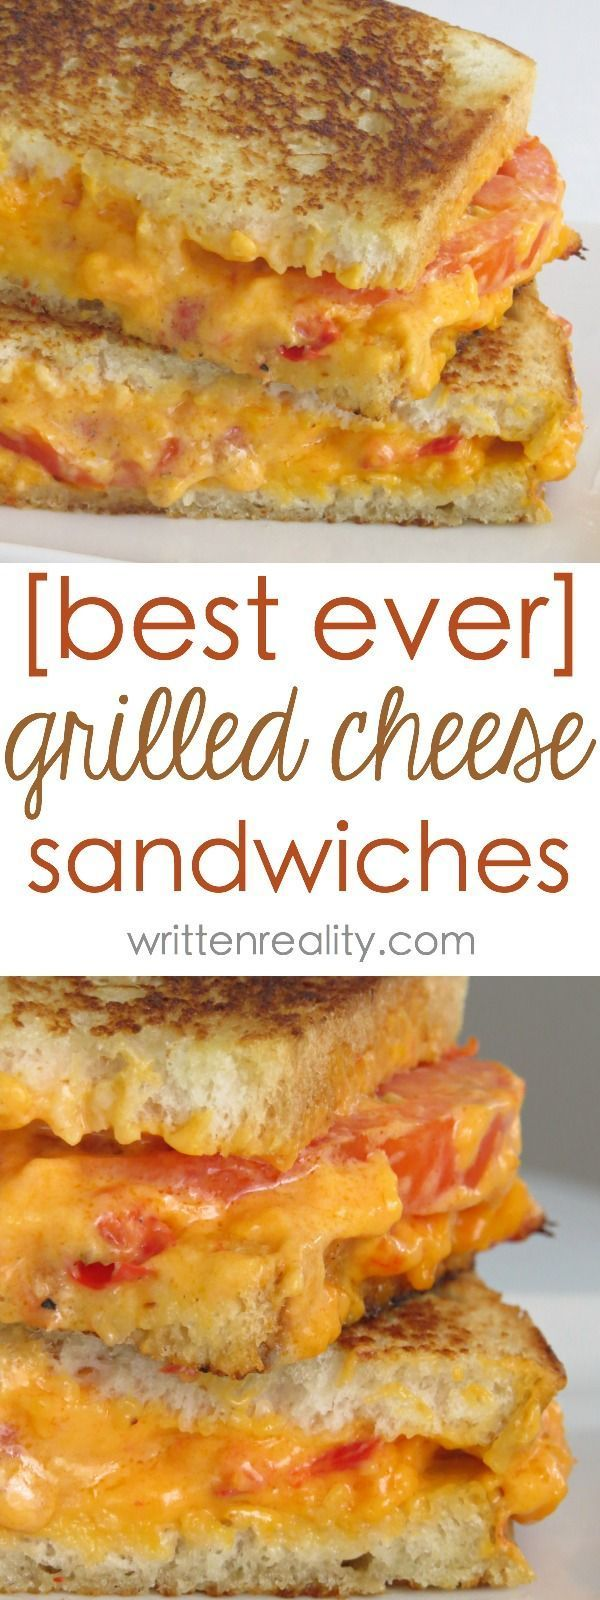 Best Grilled Cheese Sandwich Recipe : Want to learn how to make the most delicious grilled cheese sandwich? Here's the secret to a perfectly grilled cheese sandwich with a filling of the most delicious gooey melted cheese. It's a super easy recipe everyon